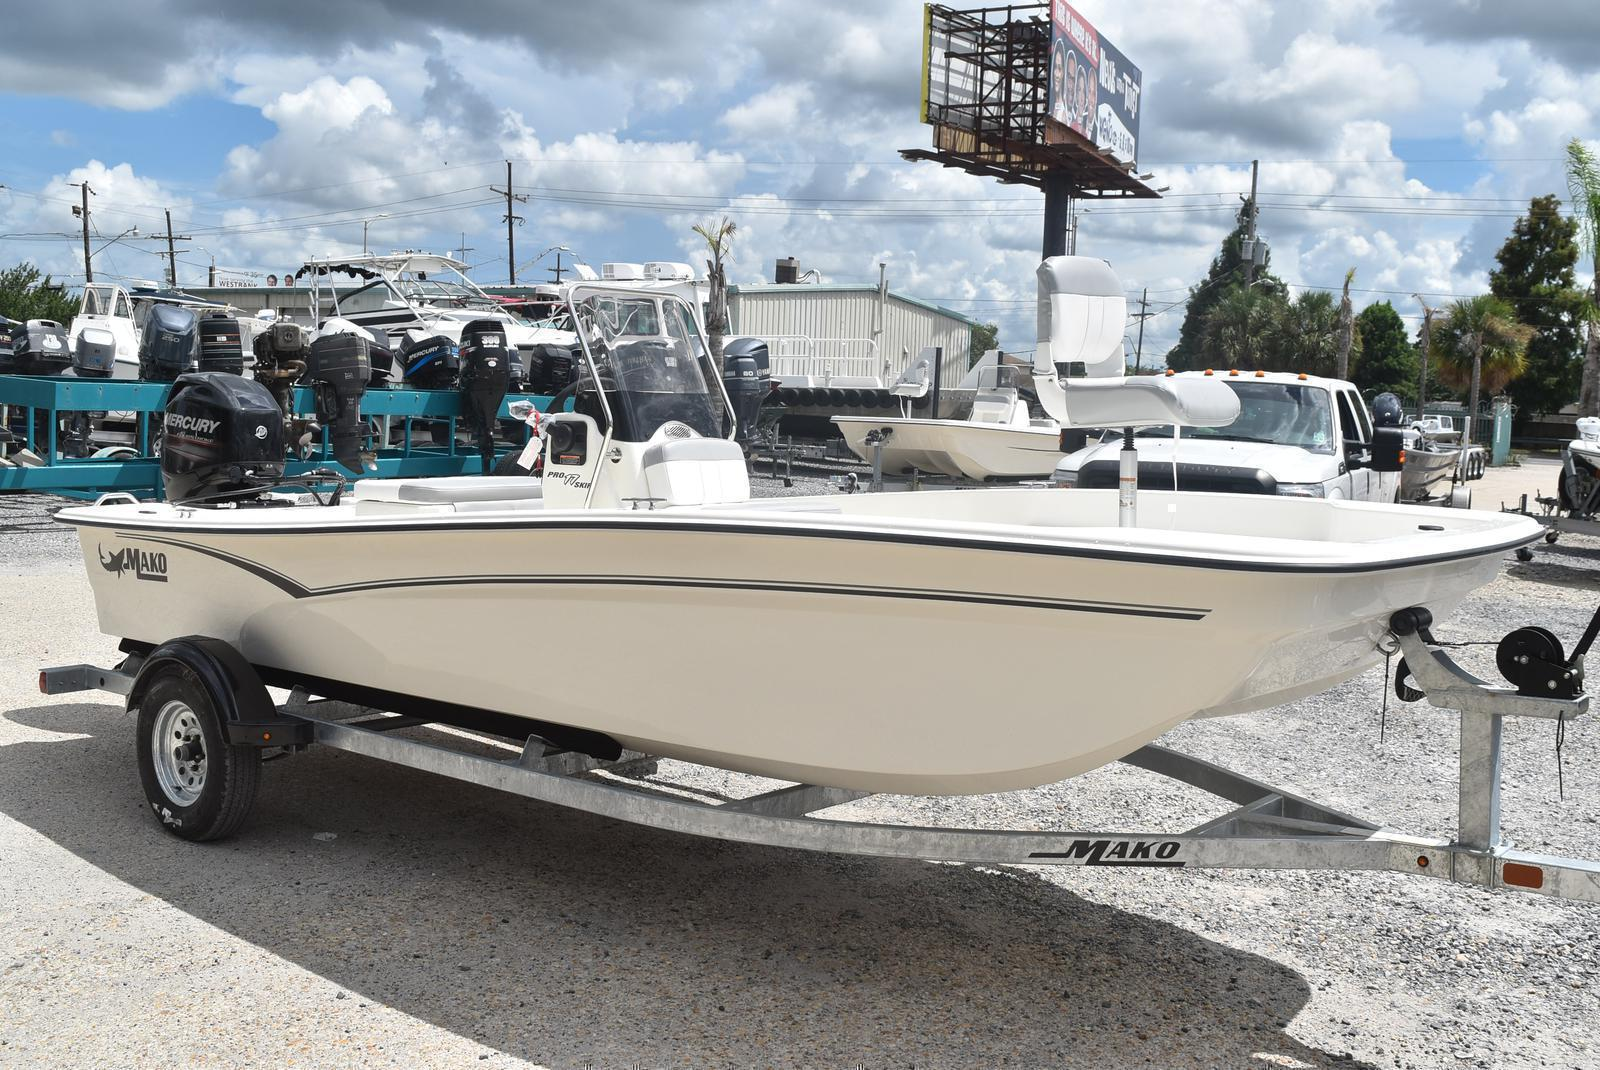 2020 Mako boat for sale, model of the boat is Pro Skiff 17, 75 ELPT & Image # 639 of 702